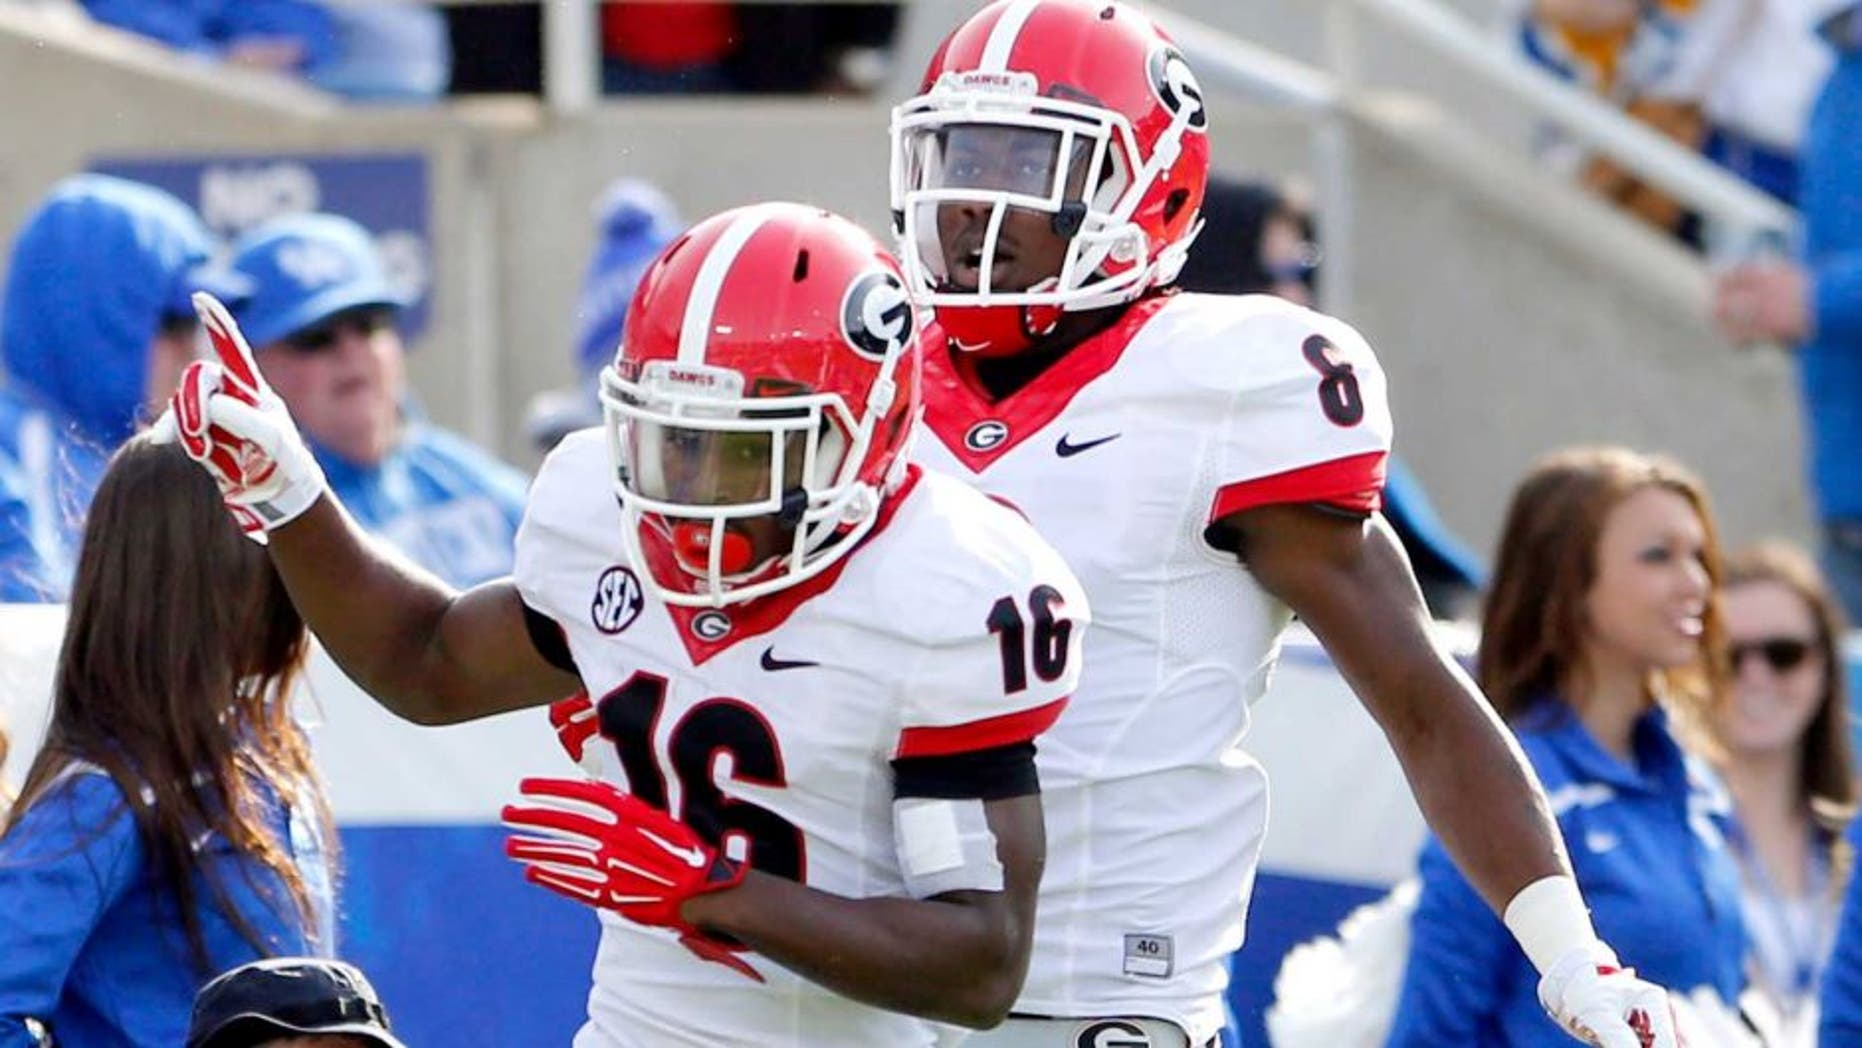 Nov 8, 2014; Lexington, KY, USA; Georgia Bulldogs wide receiver Isaiah McKenzie (16) and flanker Blake Tibbs (8) celebrate during the game against the Kentucky Wildcats at Commonwealth Stadium. Georgia defeated Kentucky 63-31. Mandatory Credit: Mark Zerof-USA TODAY Sports